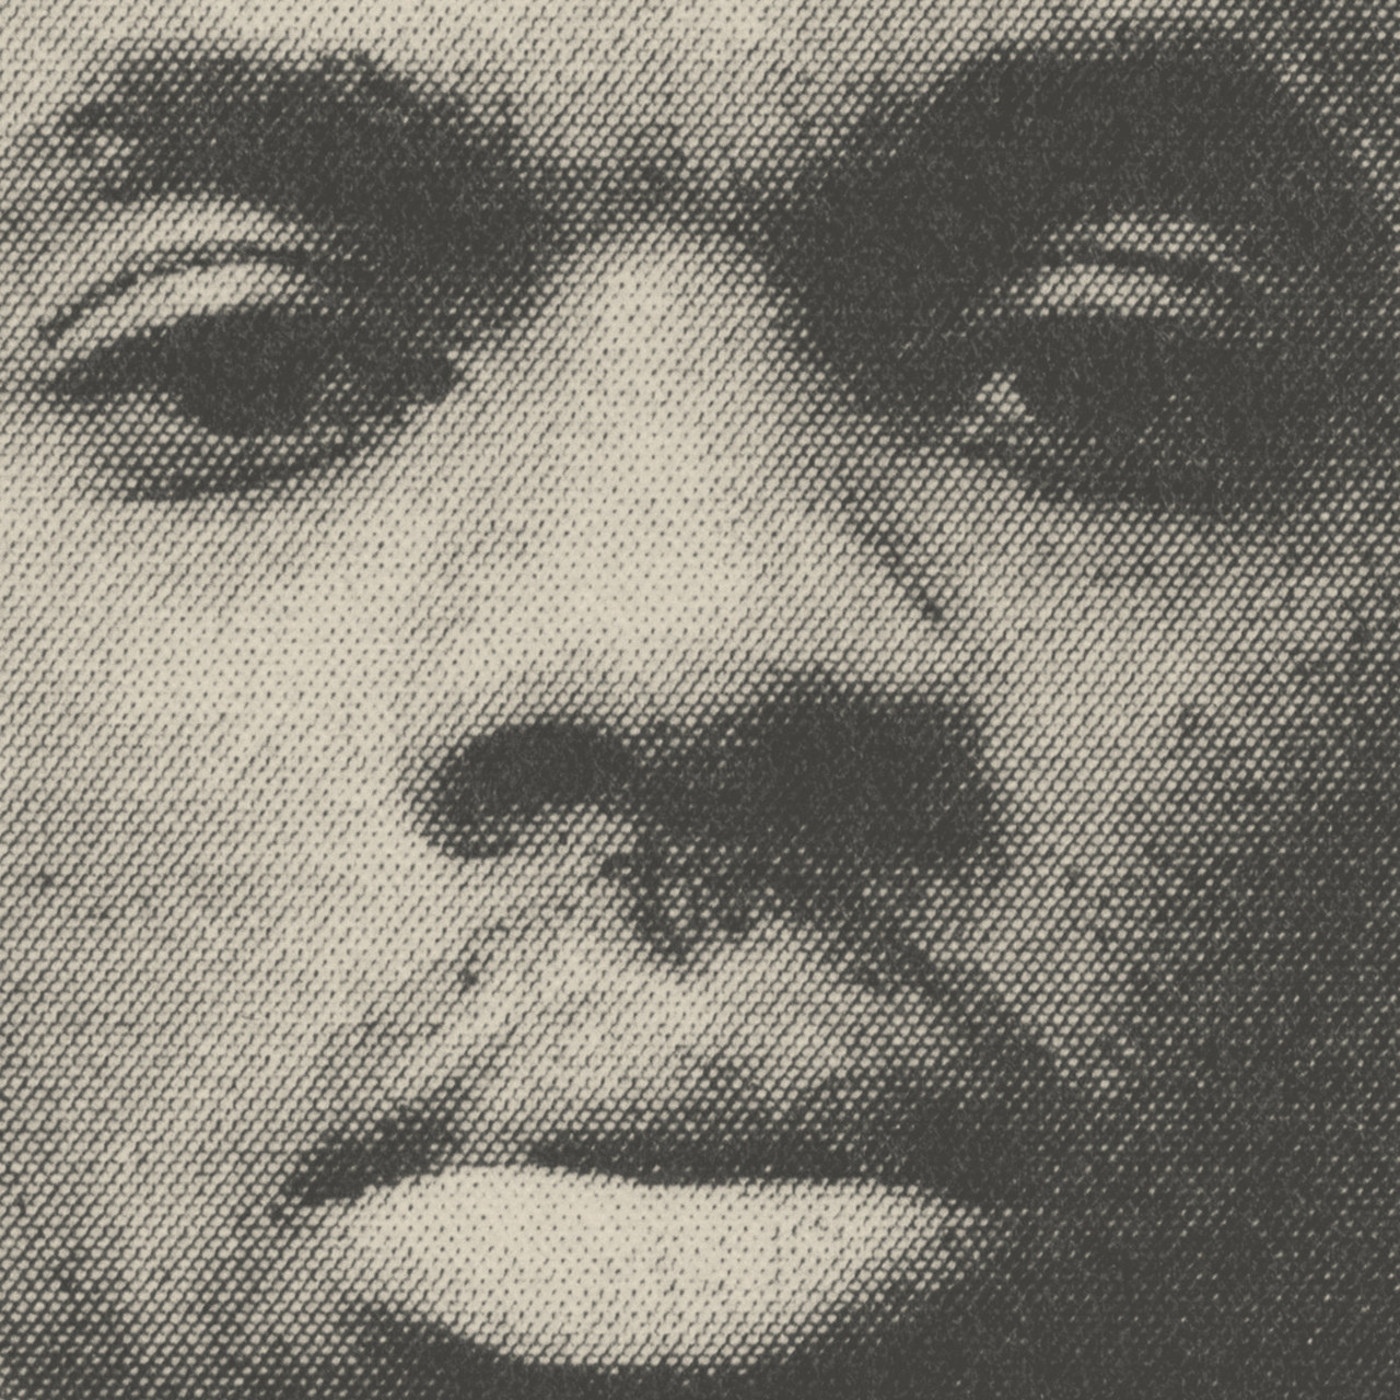 Vince Staples Drops New Self-Titled Album Produced by Kenny Beats | Complex